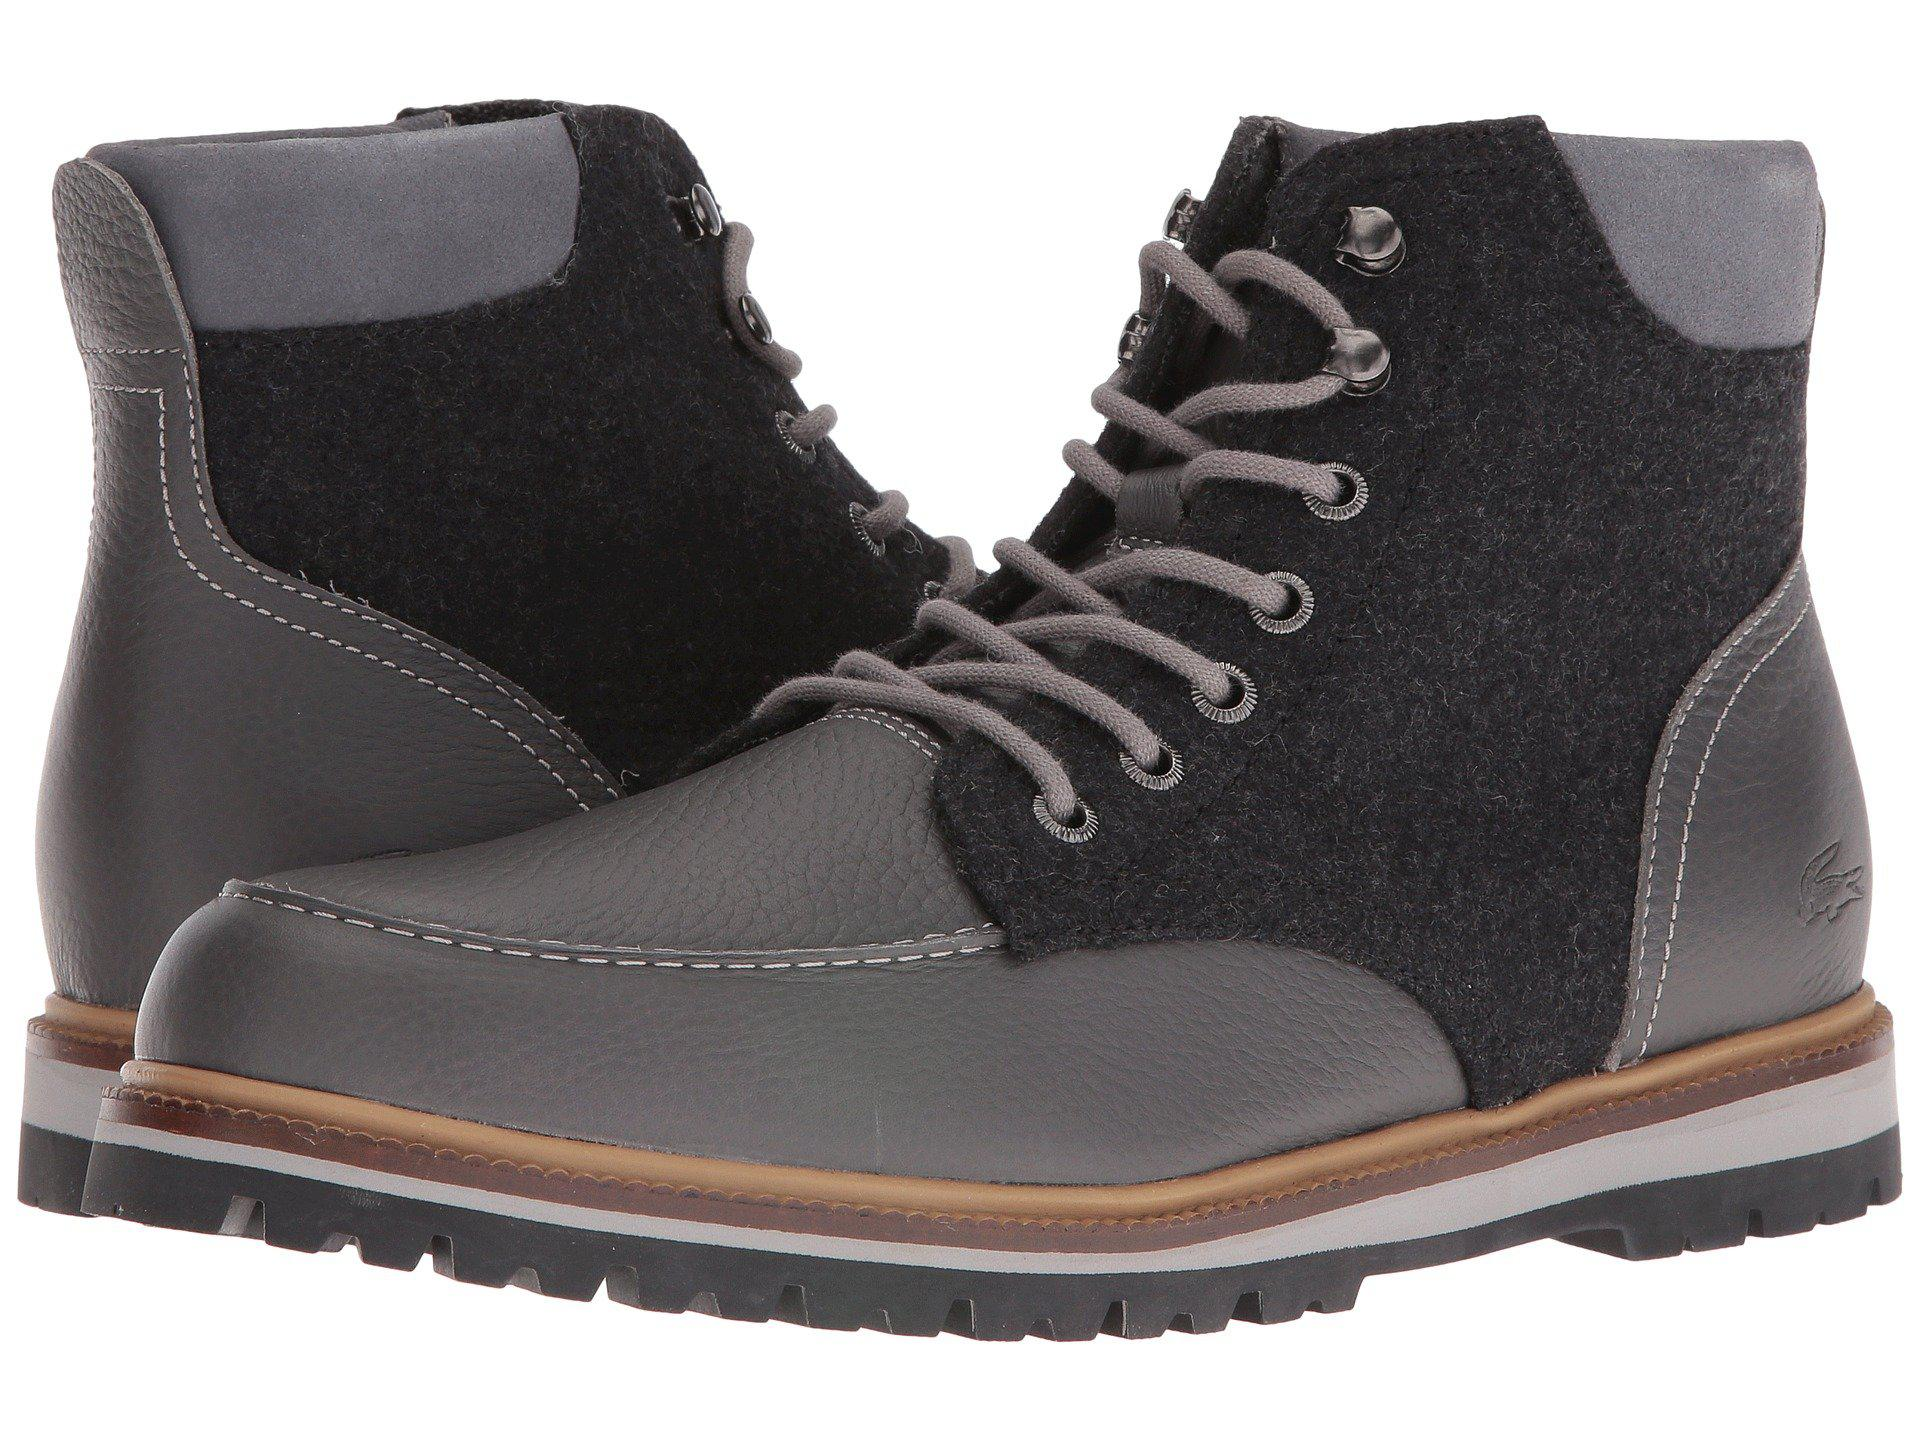 7a6a13f21d9f33 Lyst - Lacoste Montbard Boot 316 2 in Gray for Men - Save 22%